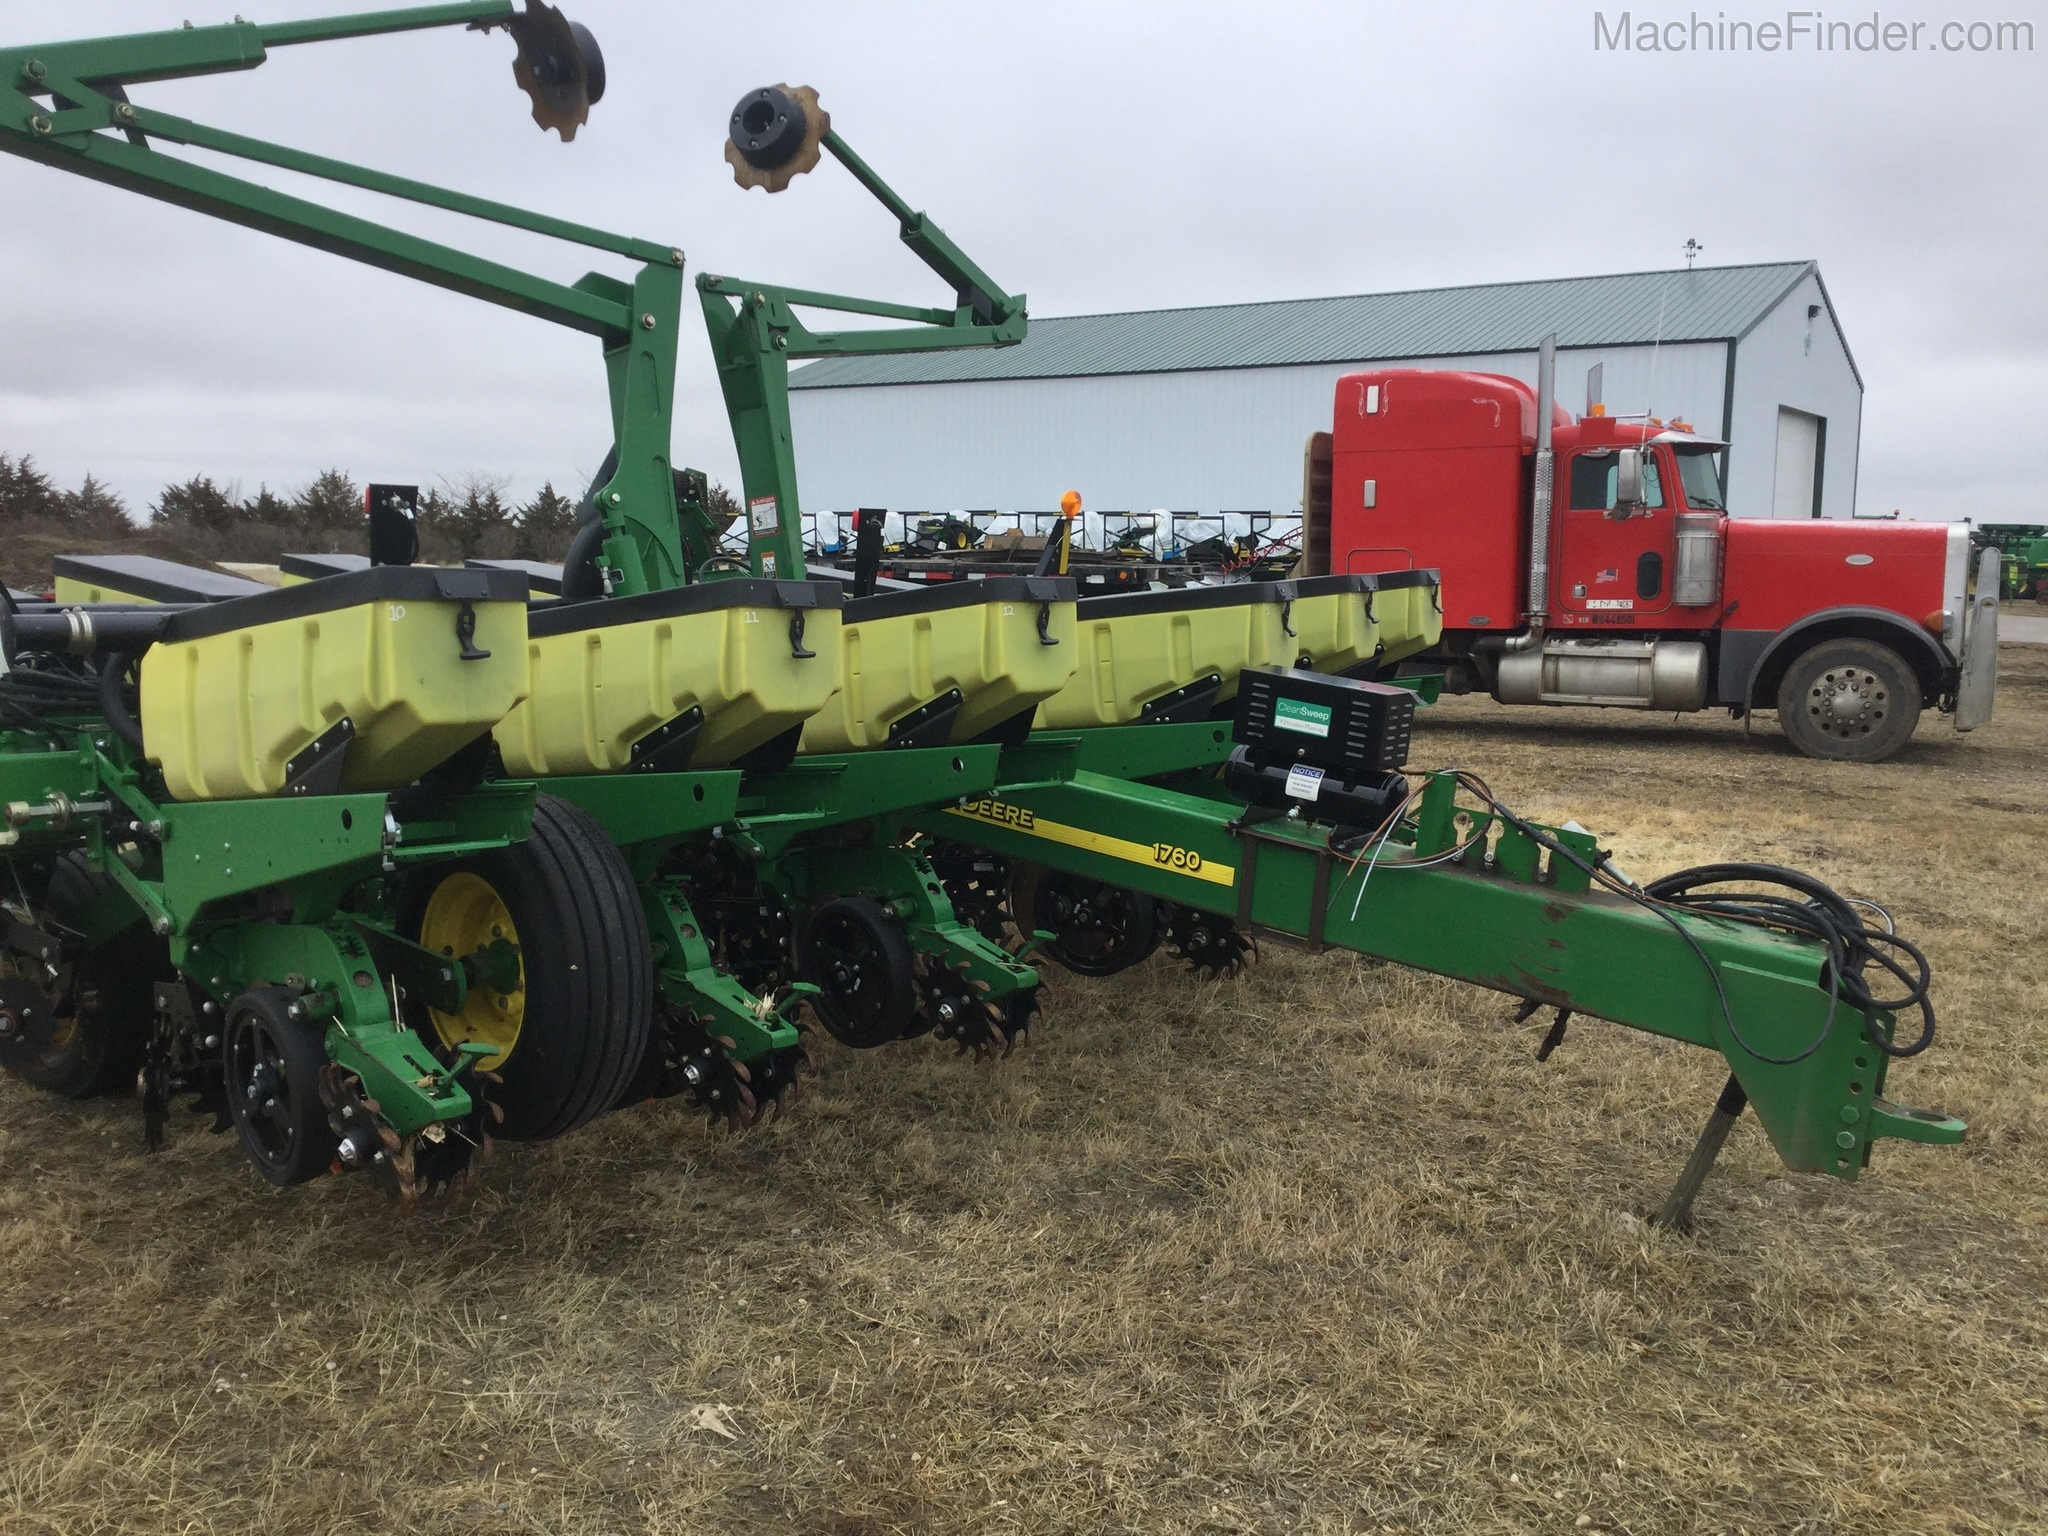 2012 John Deere 1760 Planters Drawn John Deere Machinefinder